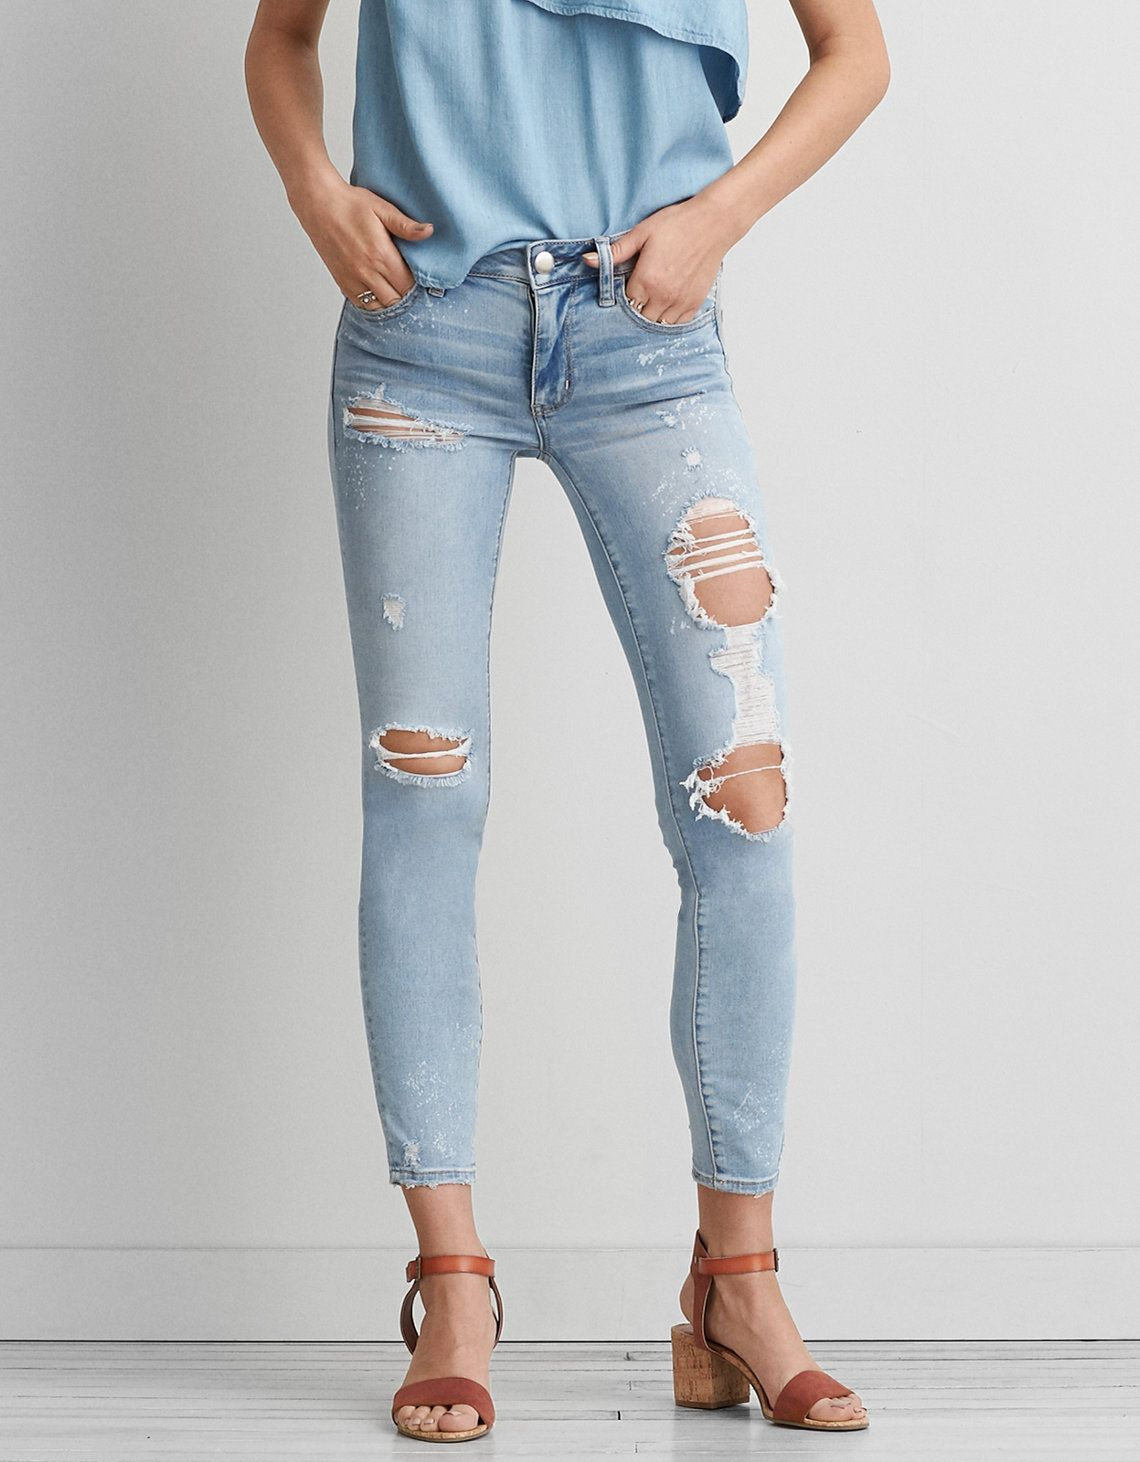 cf83dab3131 American eagle light wash ankle ripped jeans. size 2